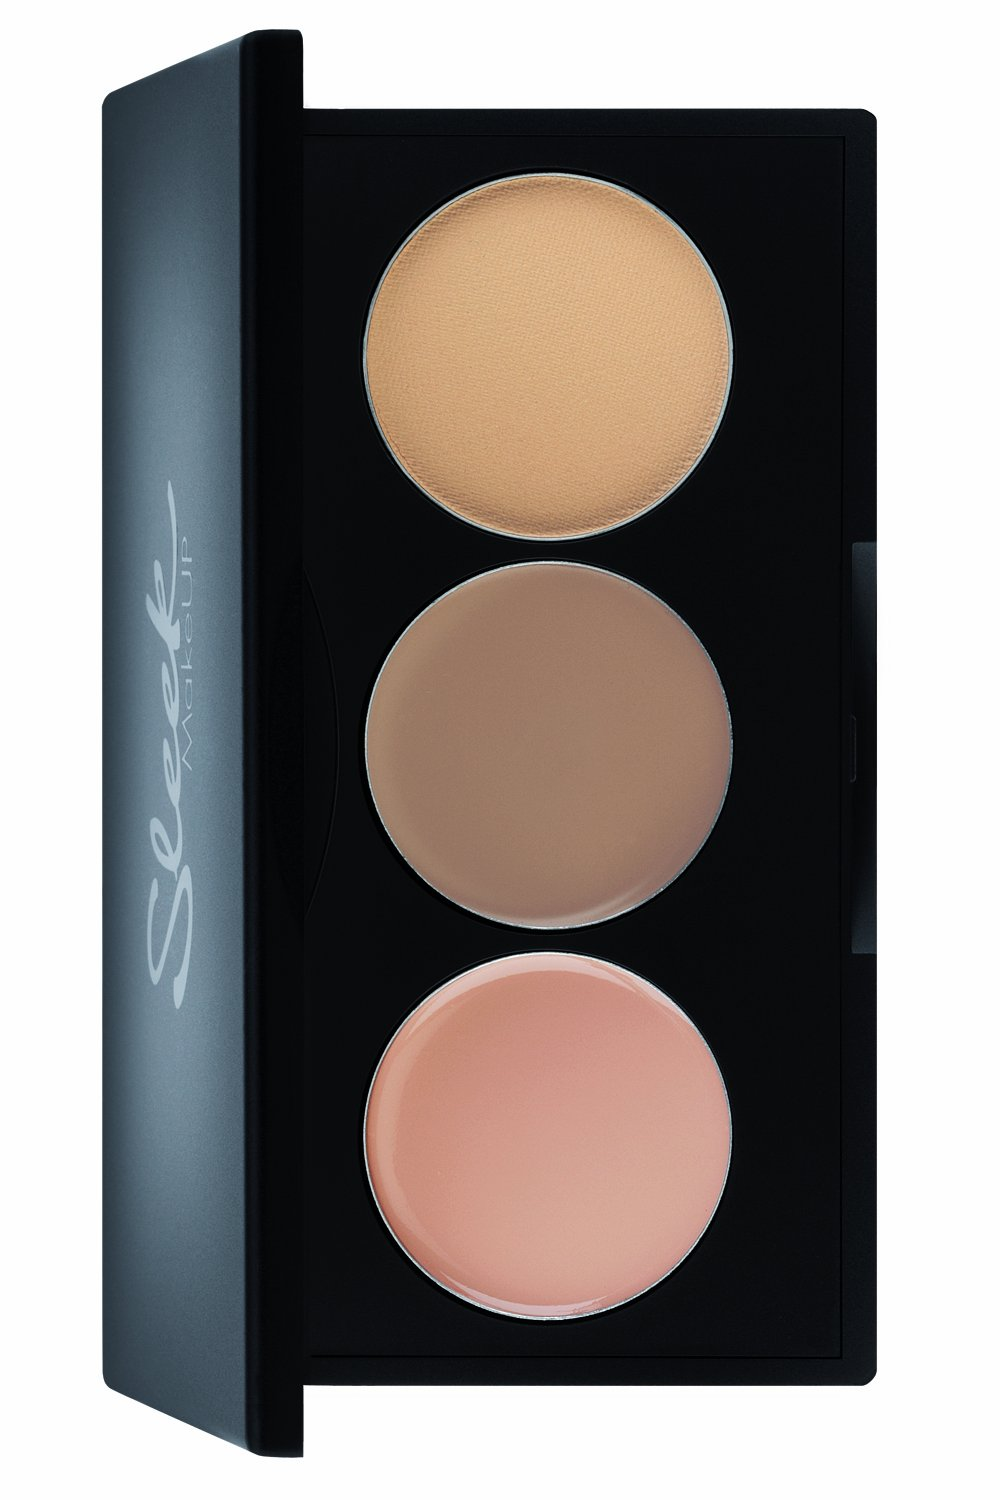 Sleek Make Up Face Form Contour and Blush Palette Light 20g ...